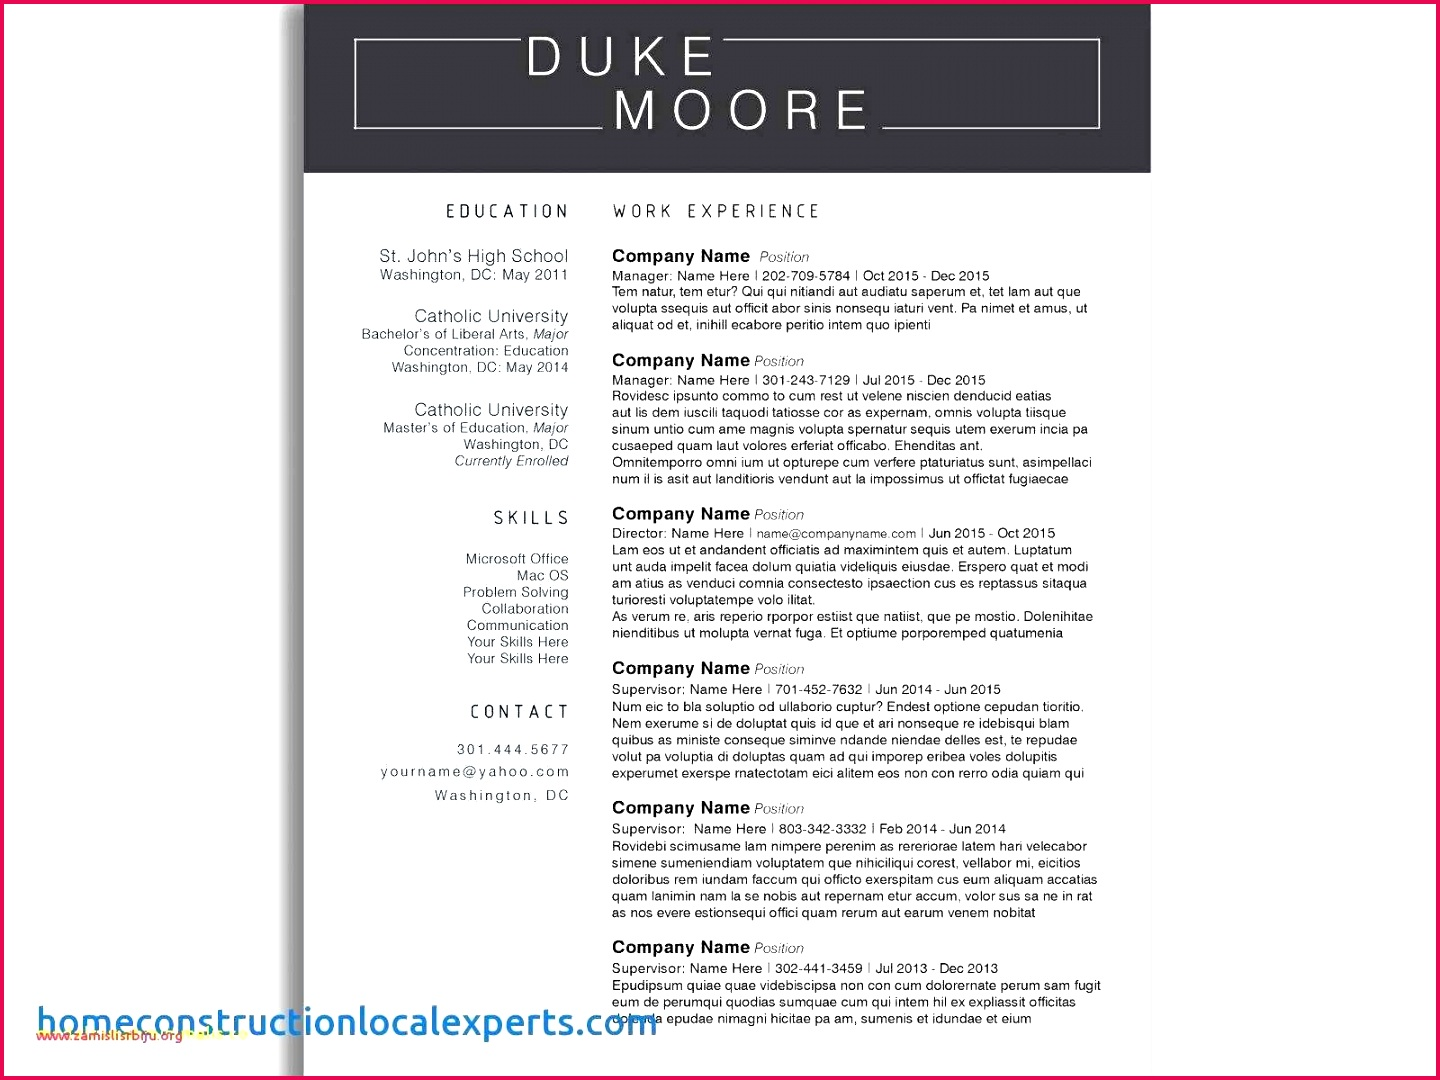 holiday t certificate template luxury sample certificate for free t certificate merit template 27 of holiday t certificate template